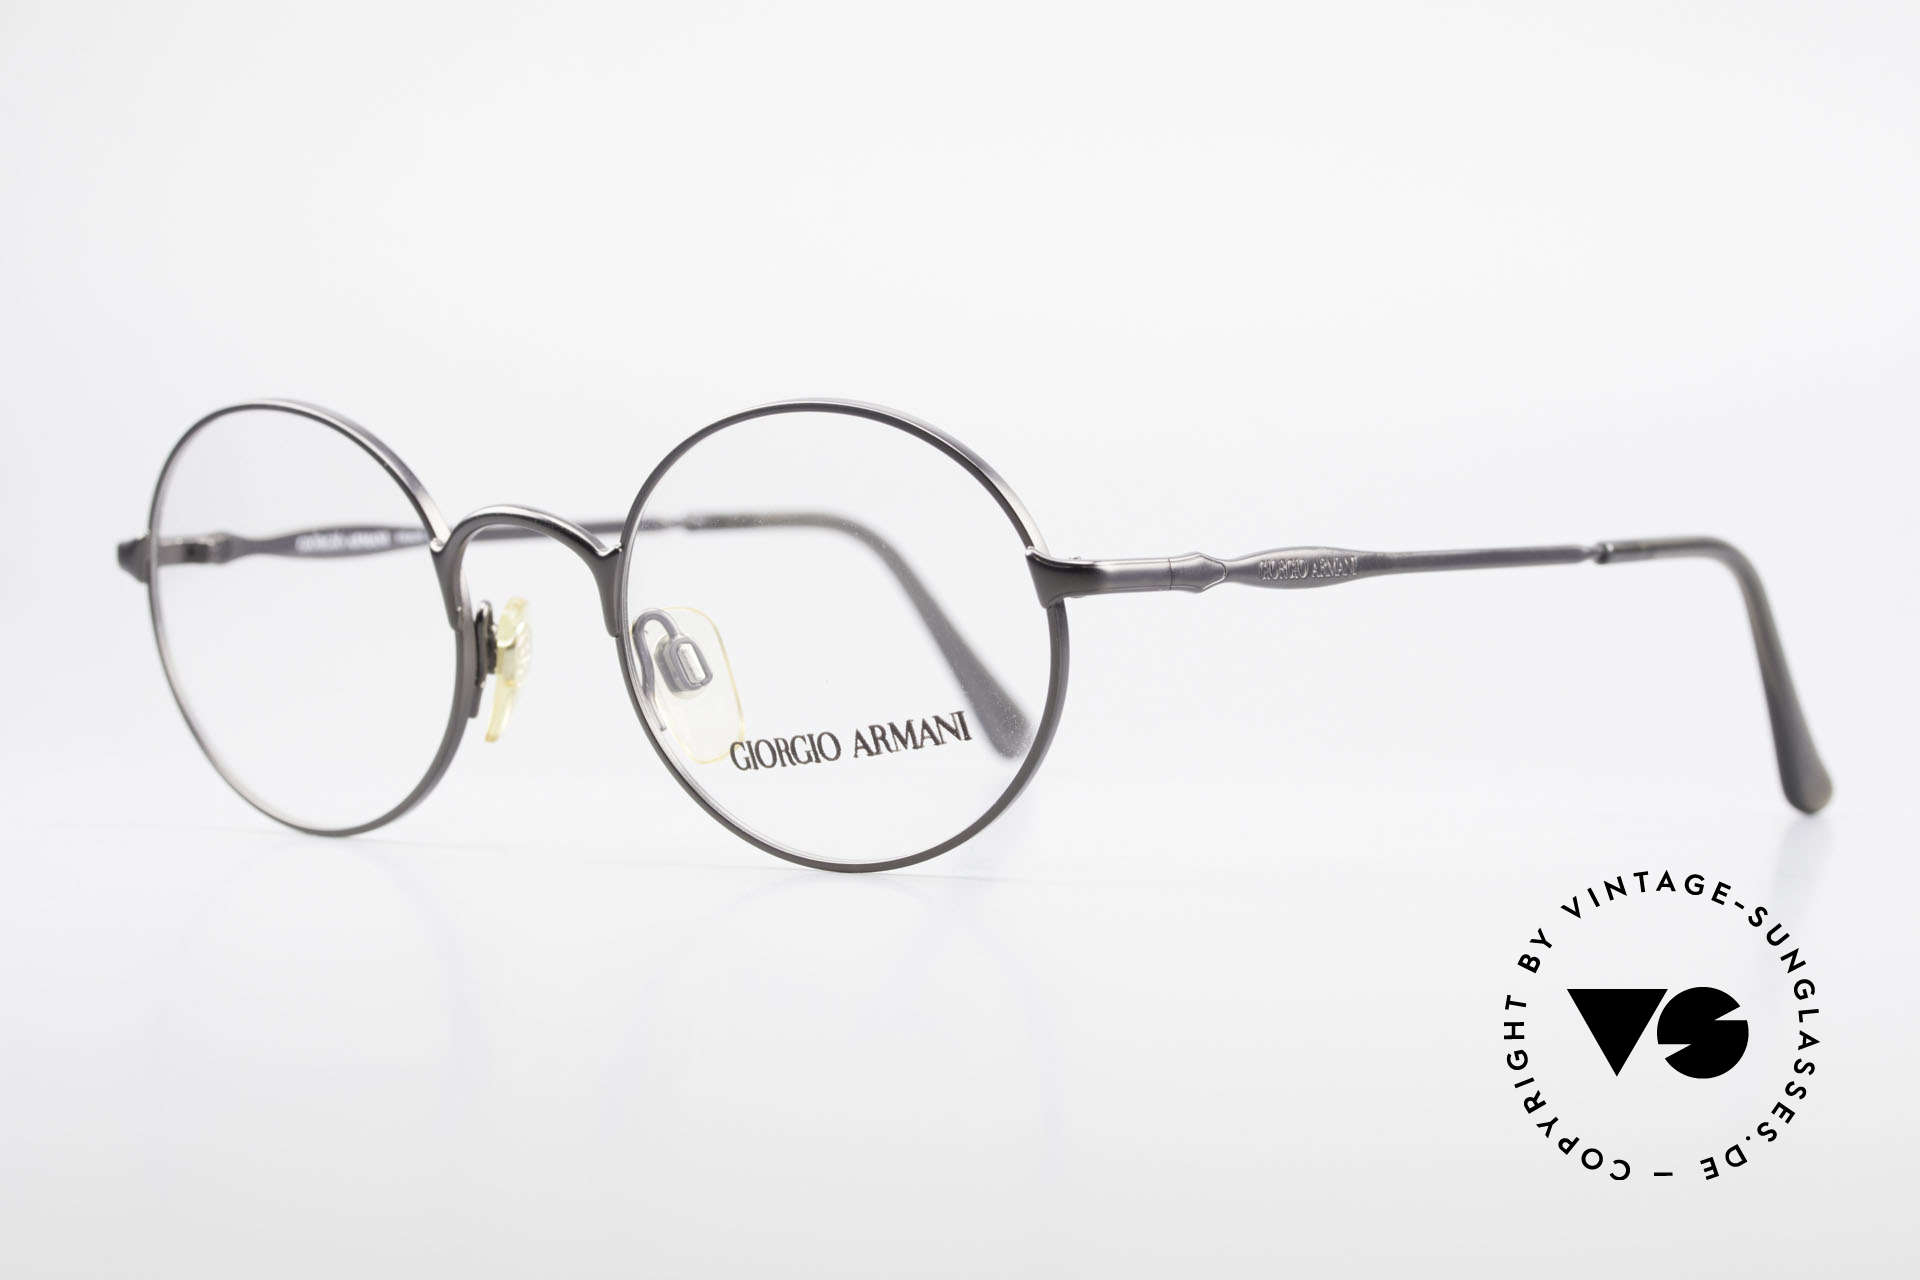 Giorgio Armani 243 Small Round Oval Glasses 90s, sober, timeless style and frame finish (anthracite), Made for Men and Women